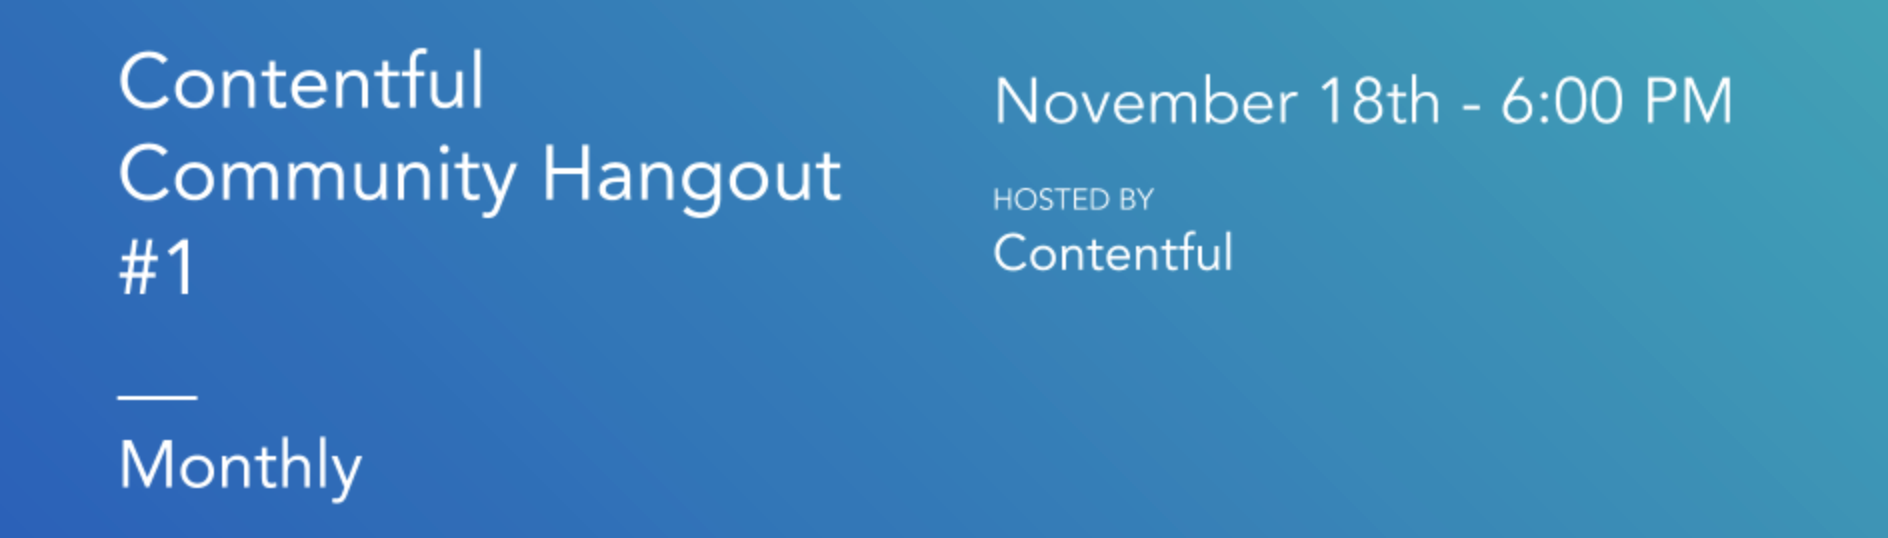 A banner announcing the Contentful community hangout on Novermber 18th at 6 PM